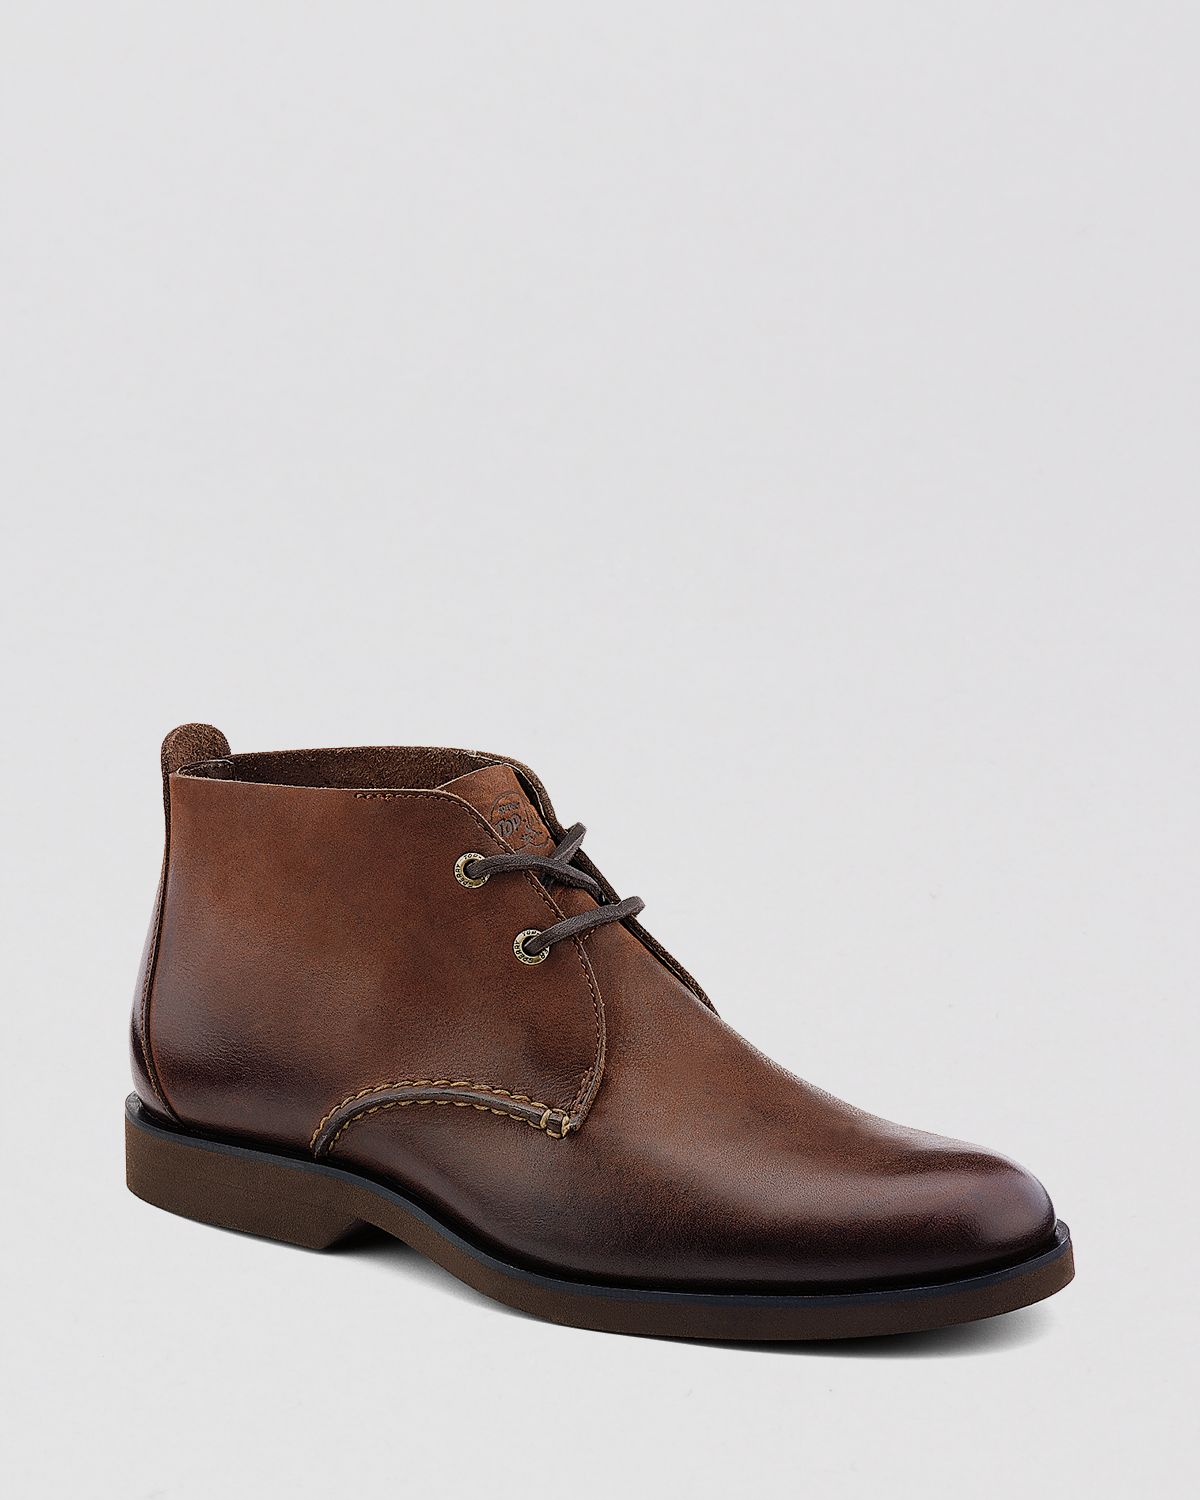 sperry top sider leather chukka boots in brown for